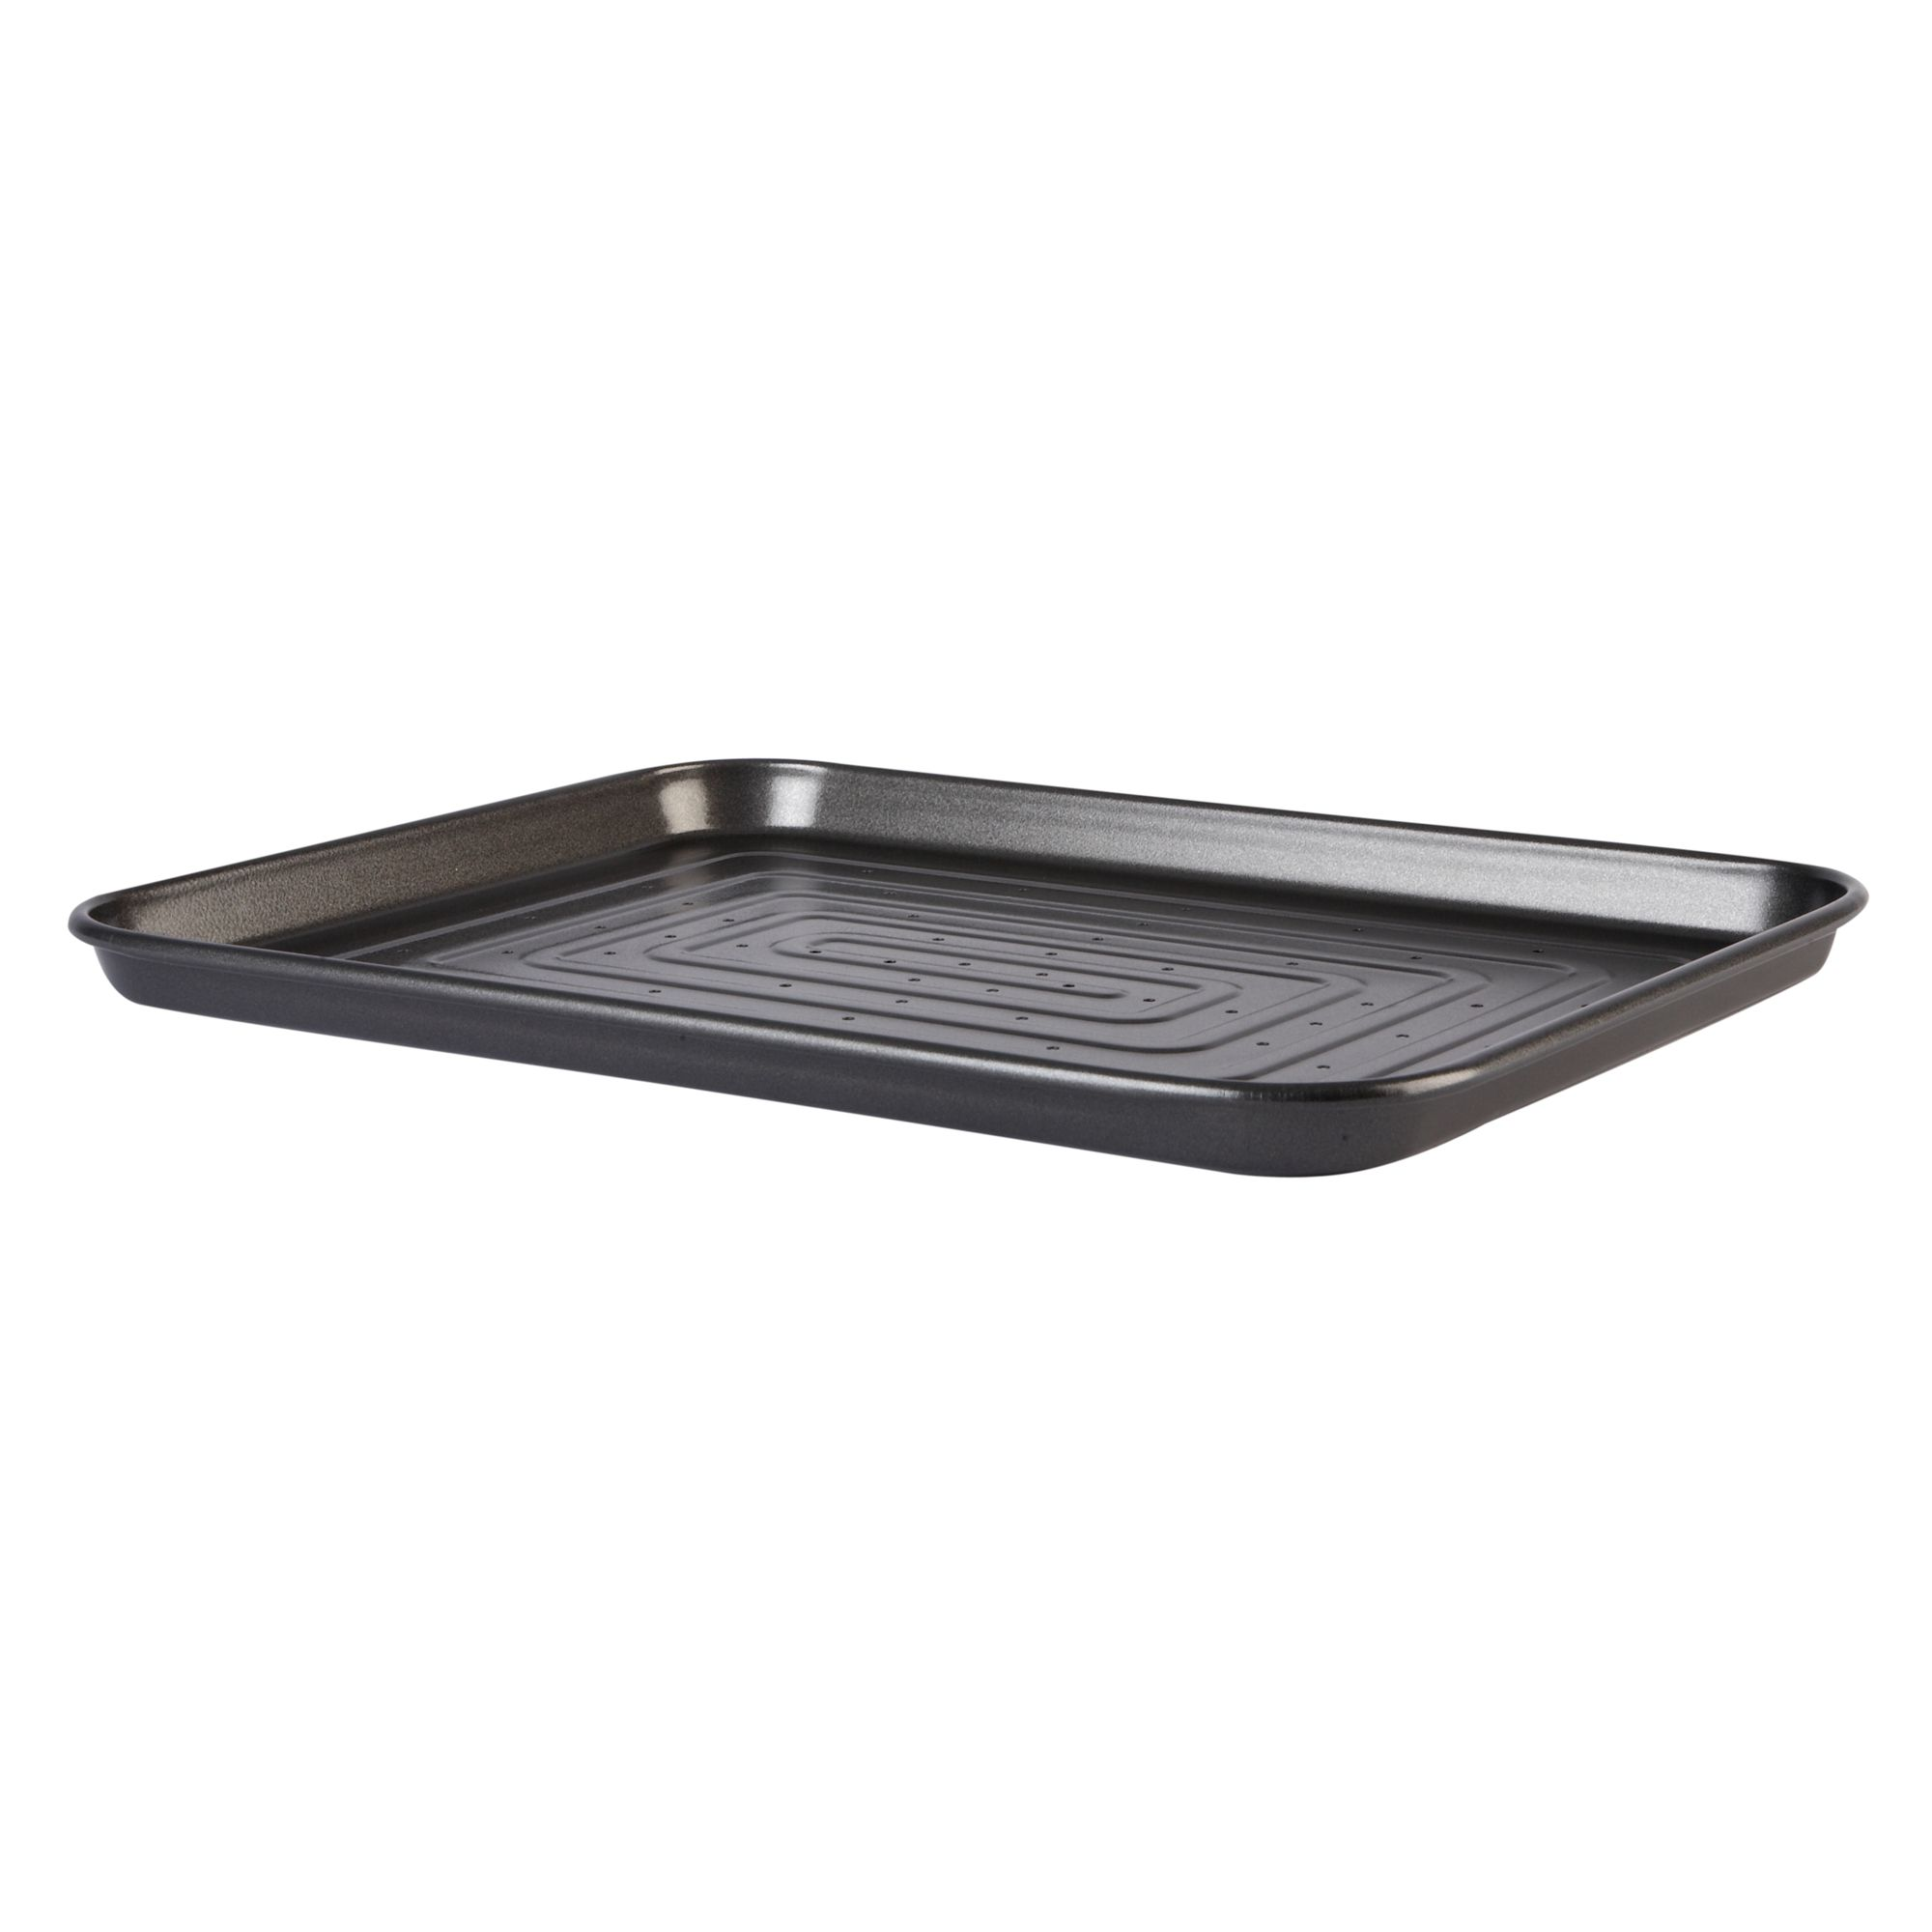 Linea chip tray